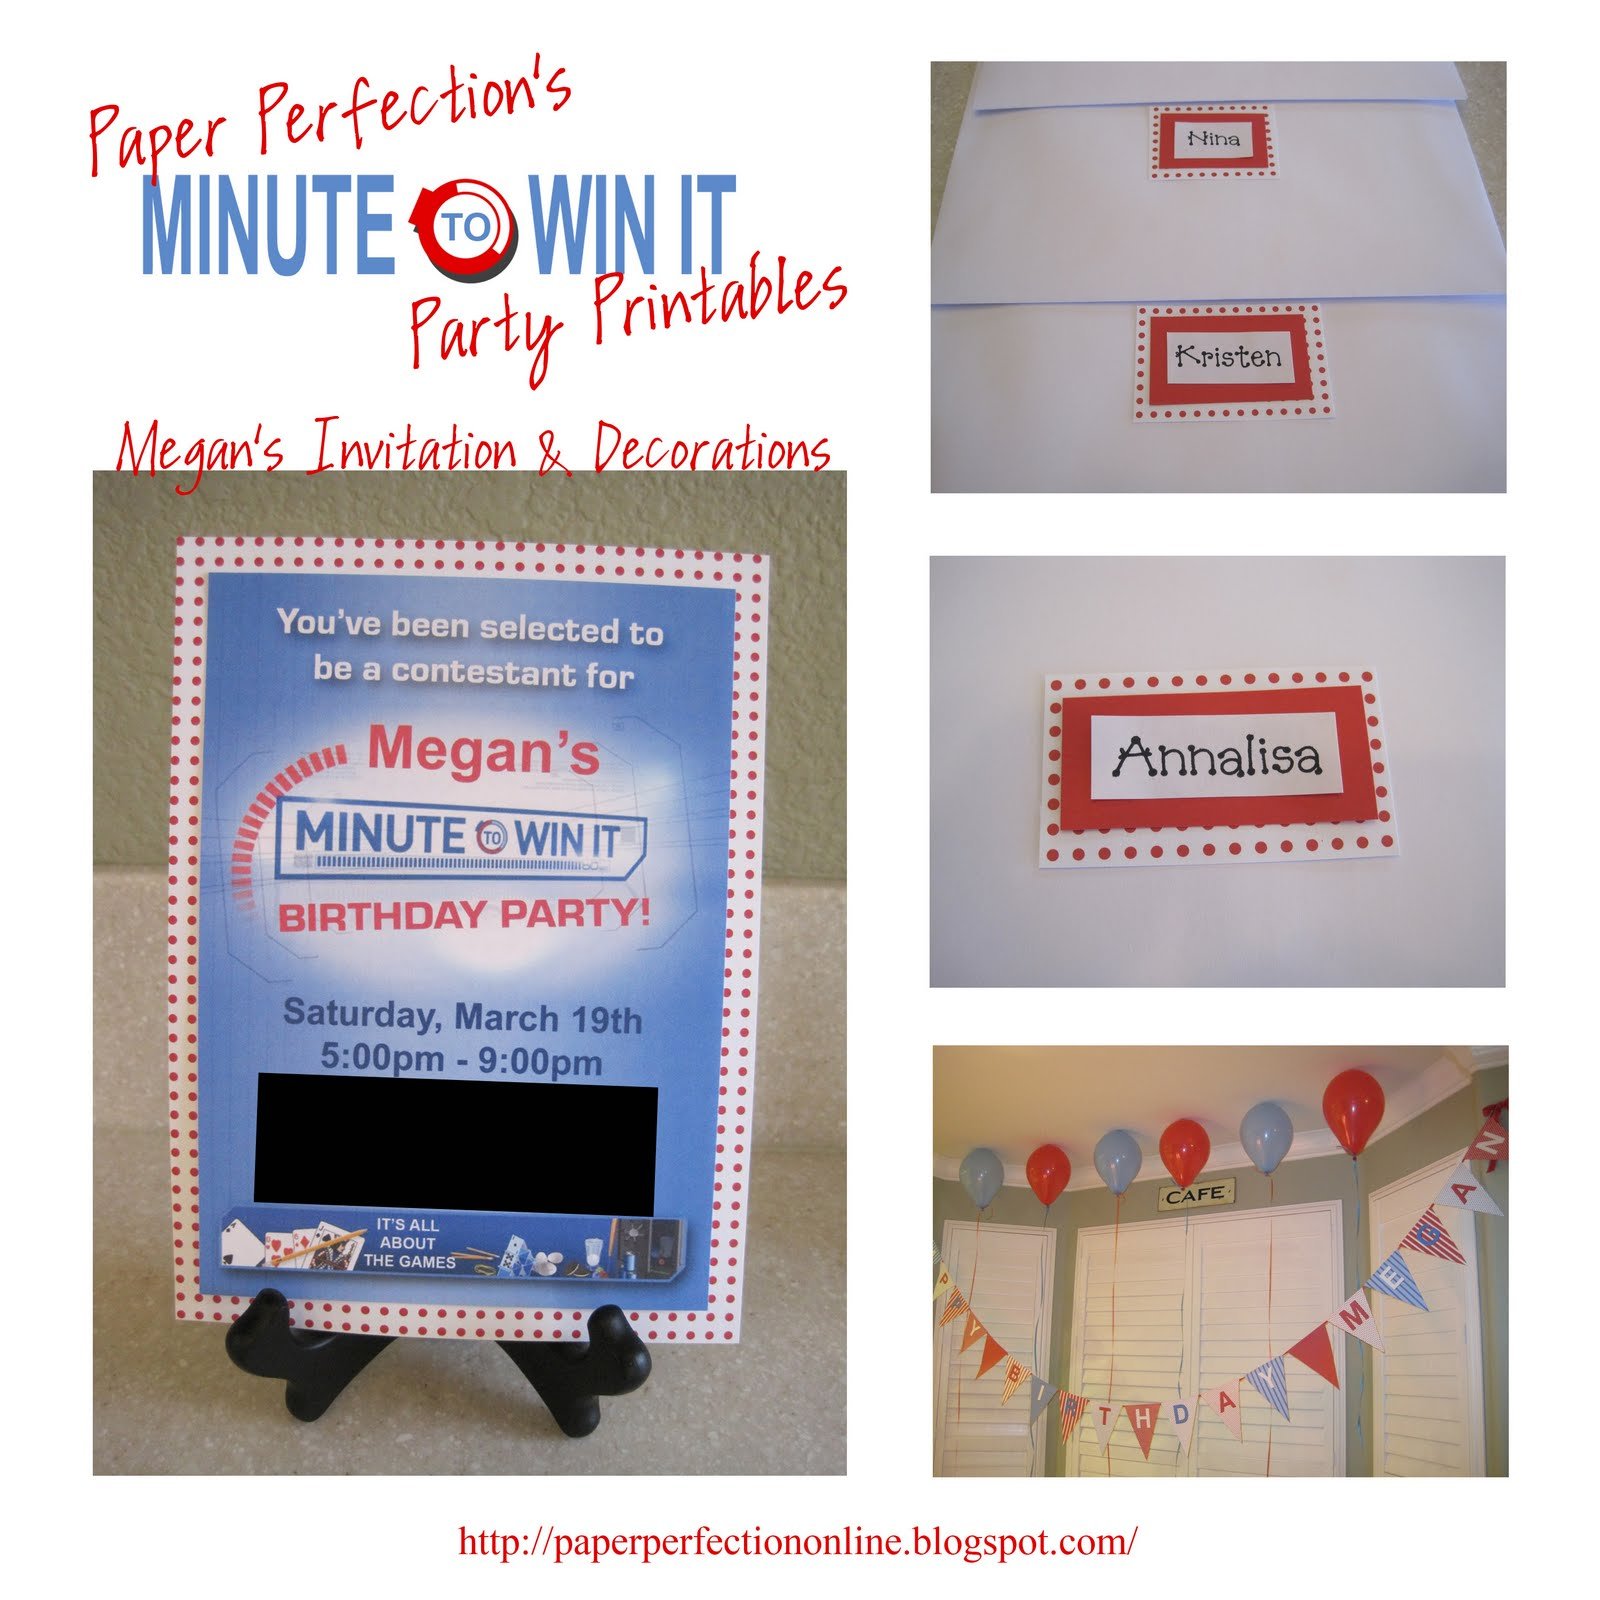 Paper Perfection Minute To Win It Party Decorations Favors and